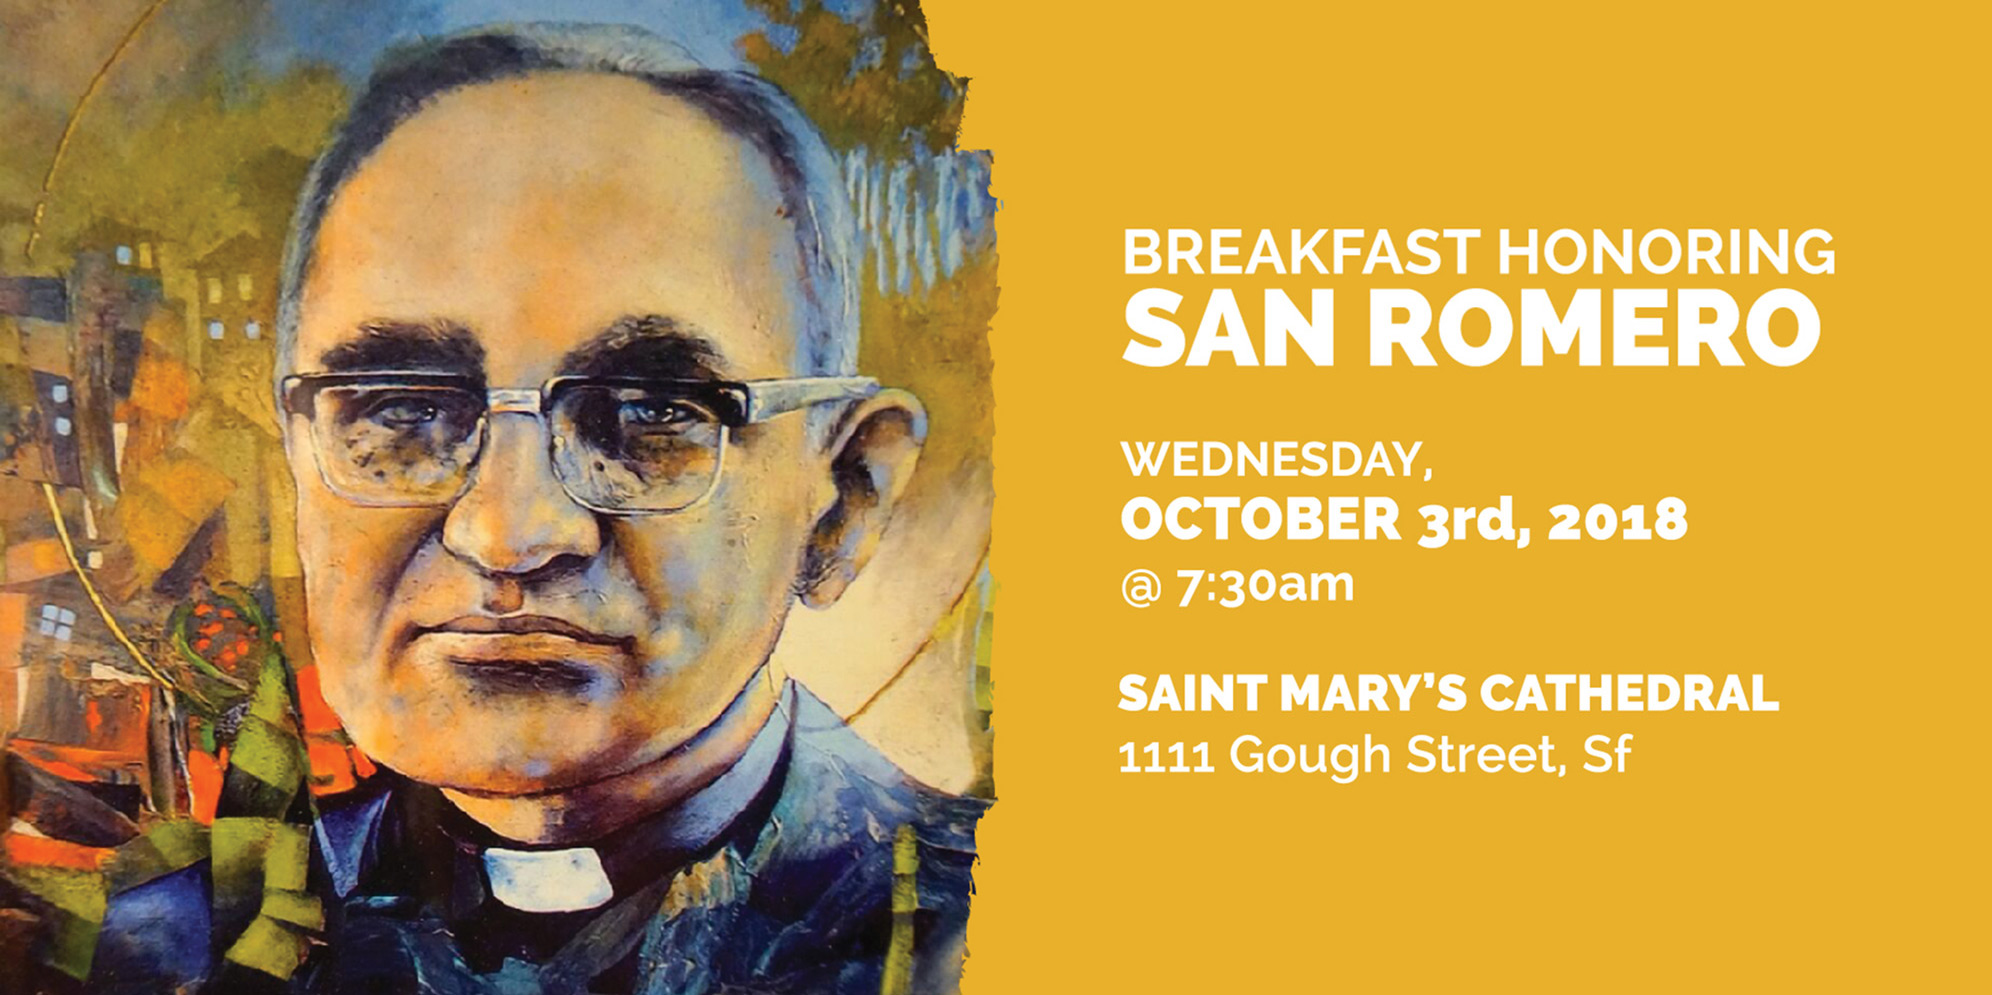 Breakfast Honoring San Romero